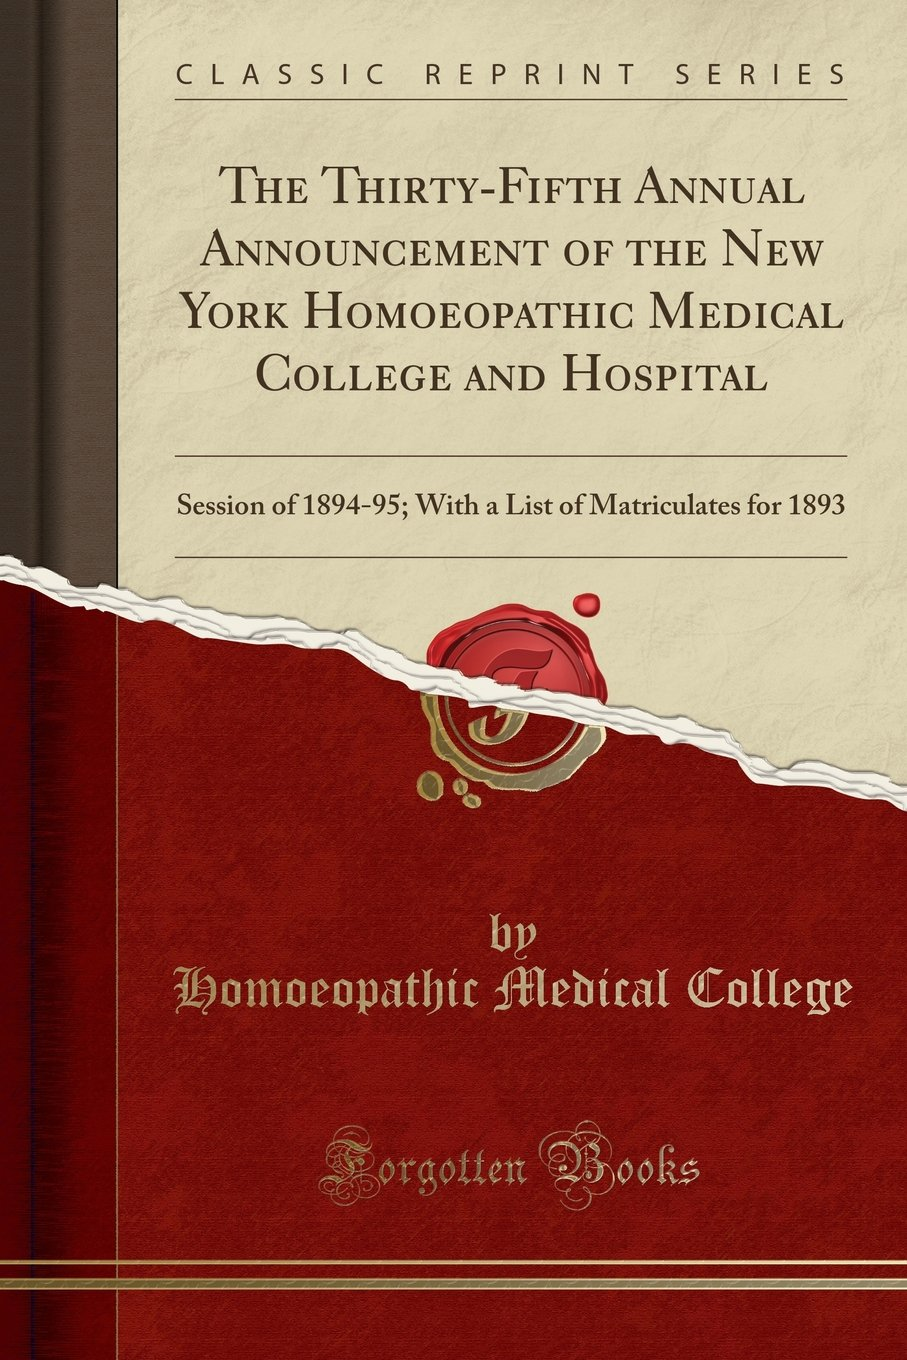 Download The Thirty-Fifth Annual Announcement of the New York Homoeopathic Medical College and Hospital: Session of 1894-95; With a List of Matriculates for 1893 (Classic Reprint) PDF